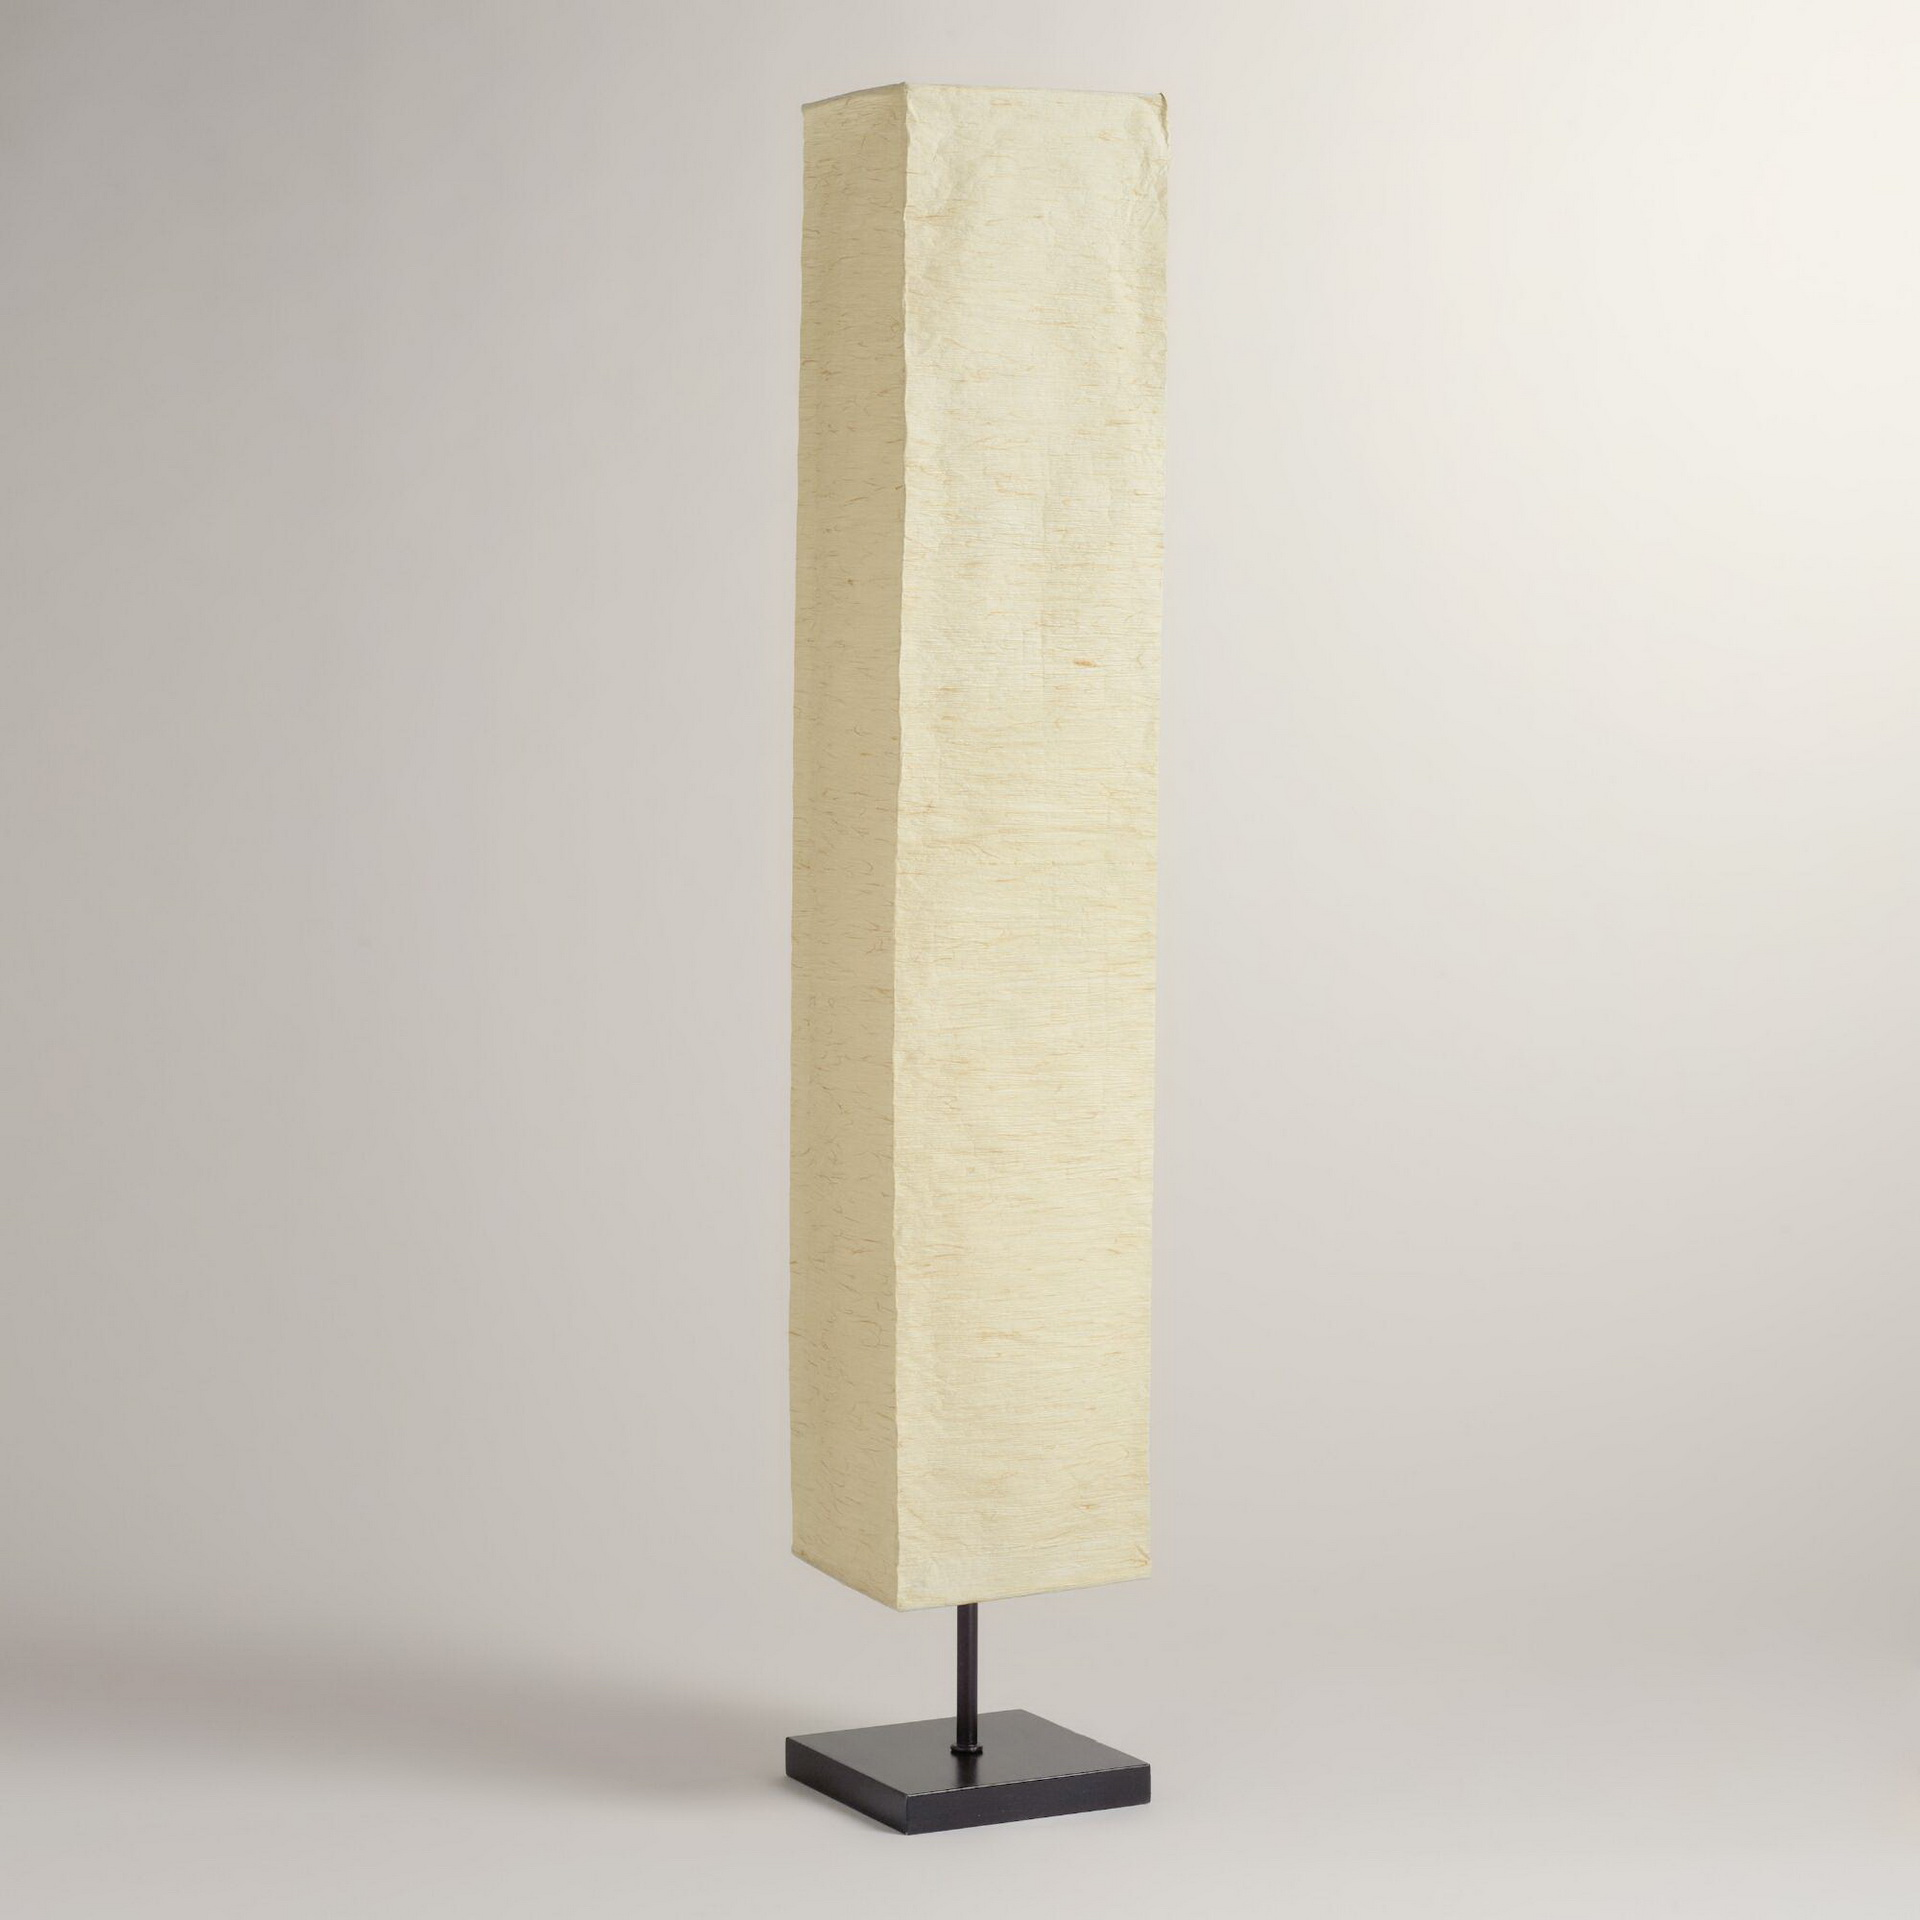 rice paper floor lamps  the upcoming sensation in floor lighting  - rice paper floor lamps are an item that is now gaining favor among homeowners and interior designers